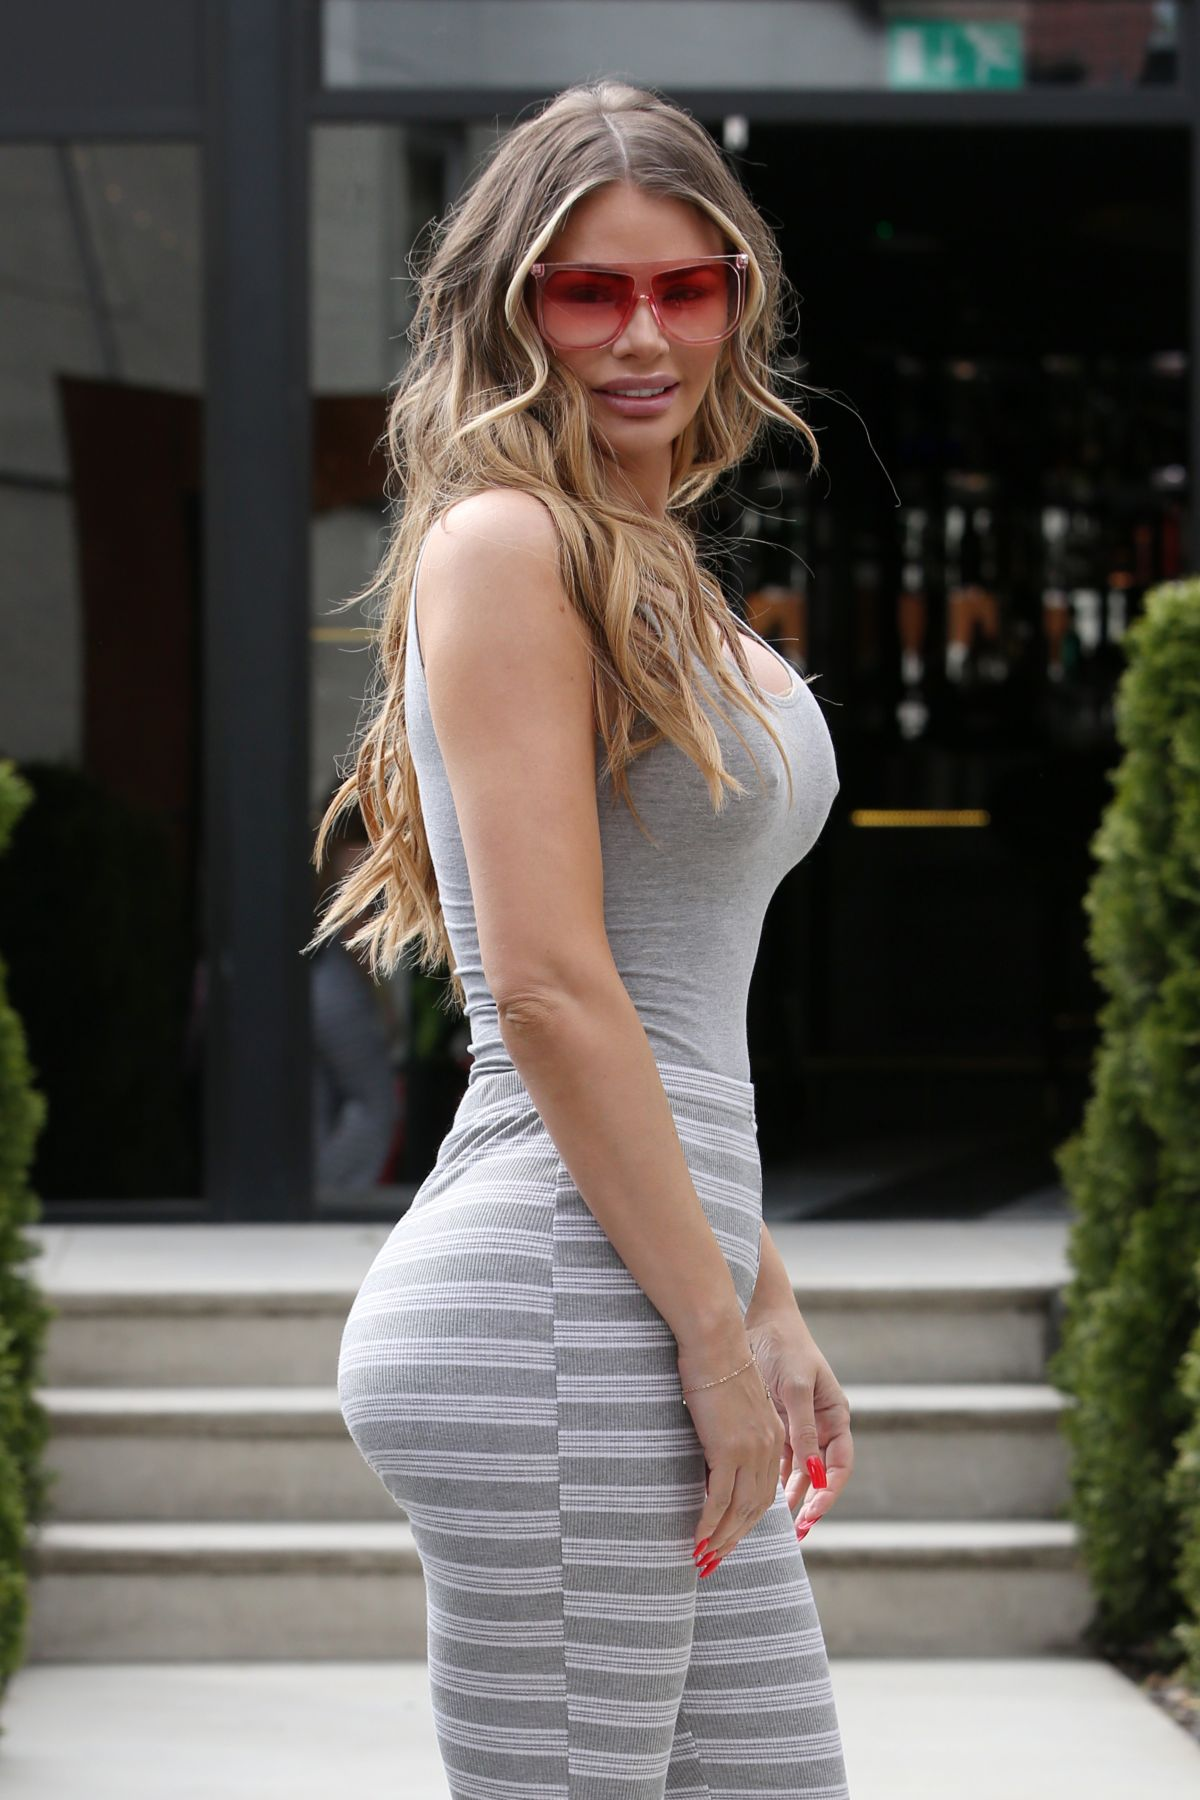 Chloe Sims Chloe Sims new pictures